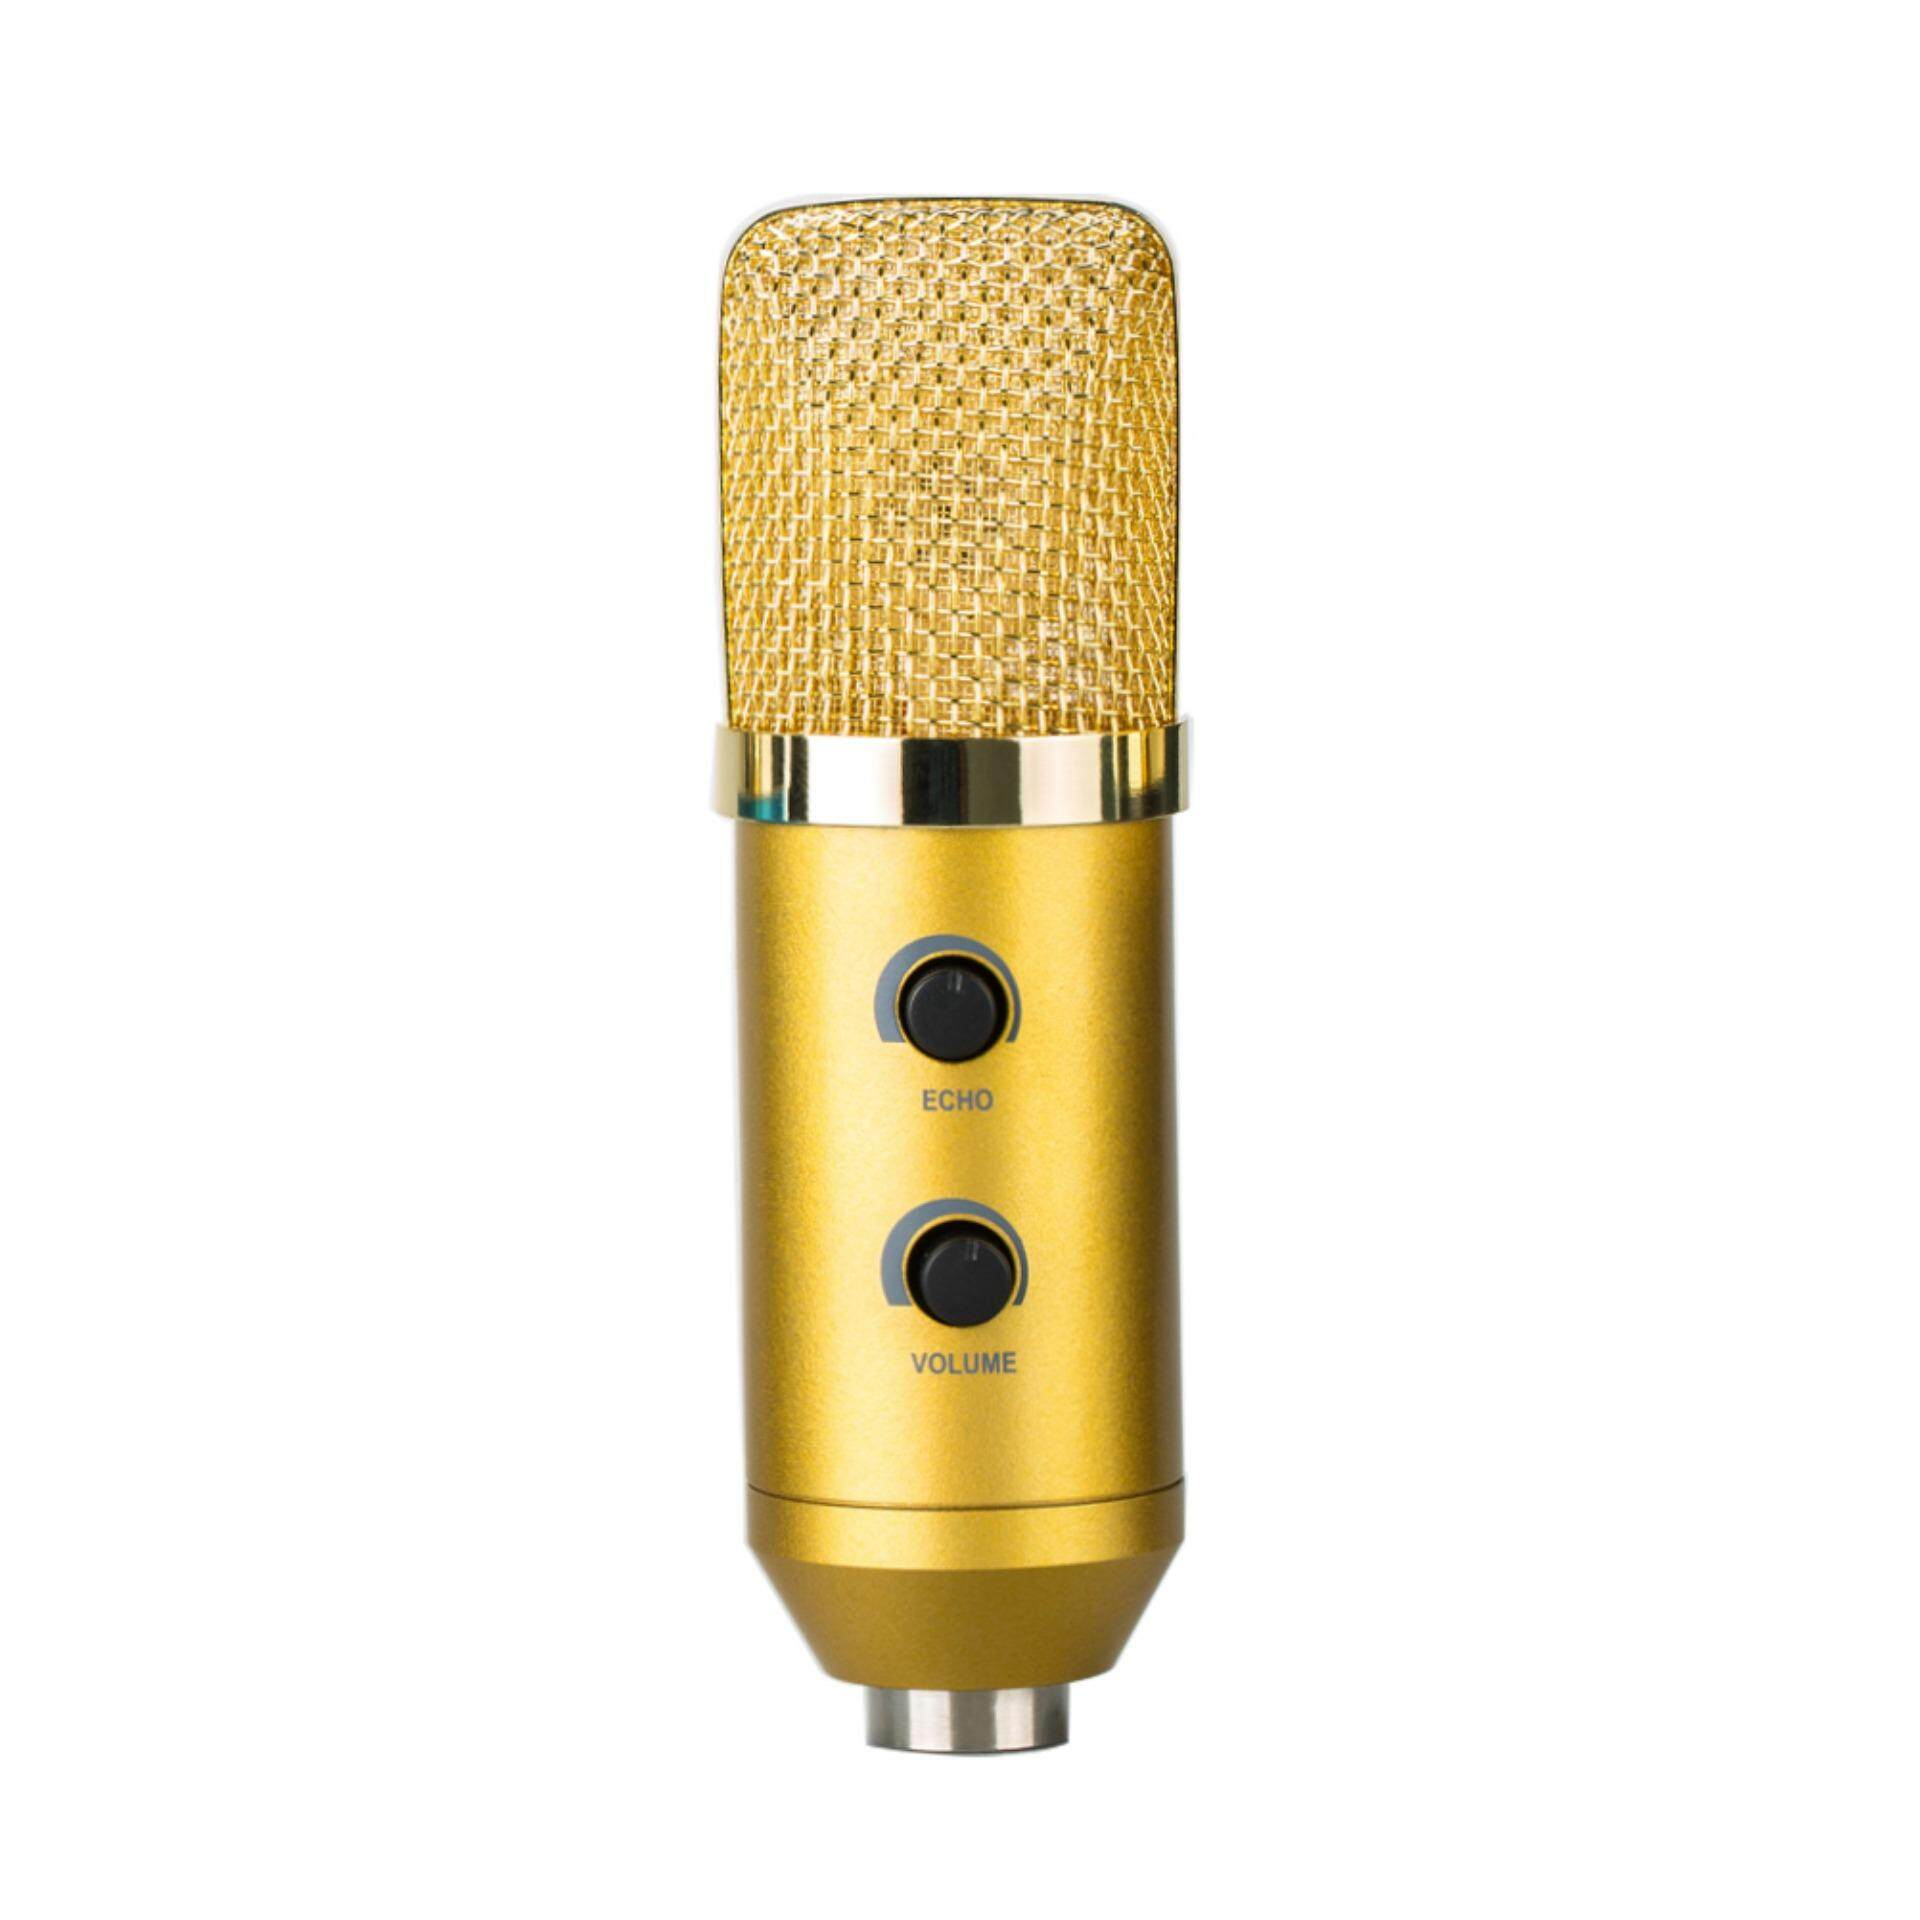 MK-F100TL Wired Microphone USB Condenser Sound Recording Mic for ChattingSinging